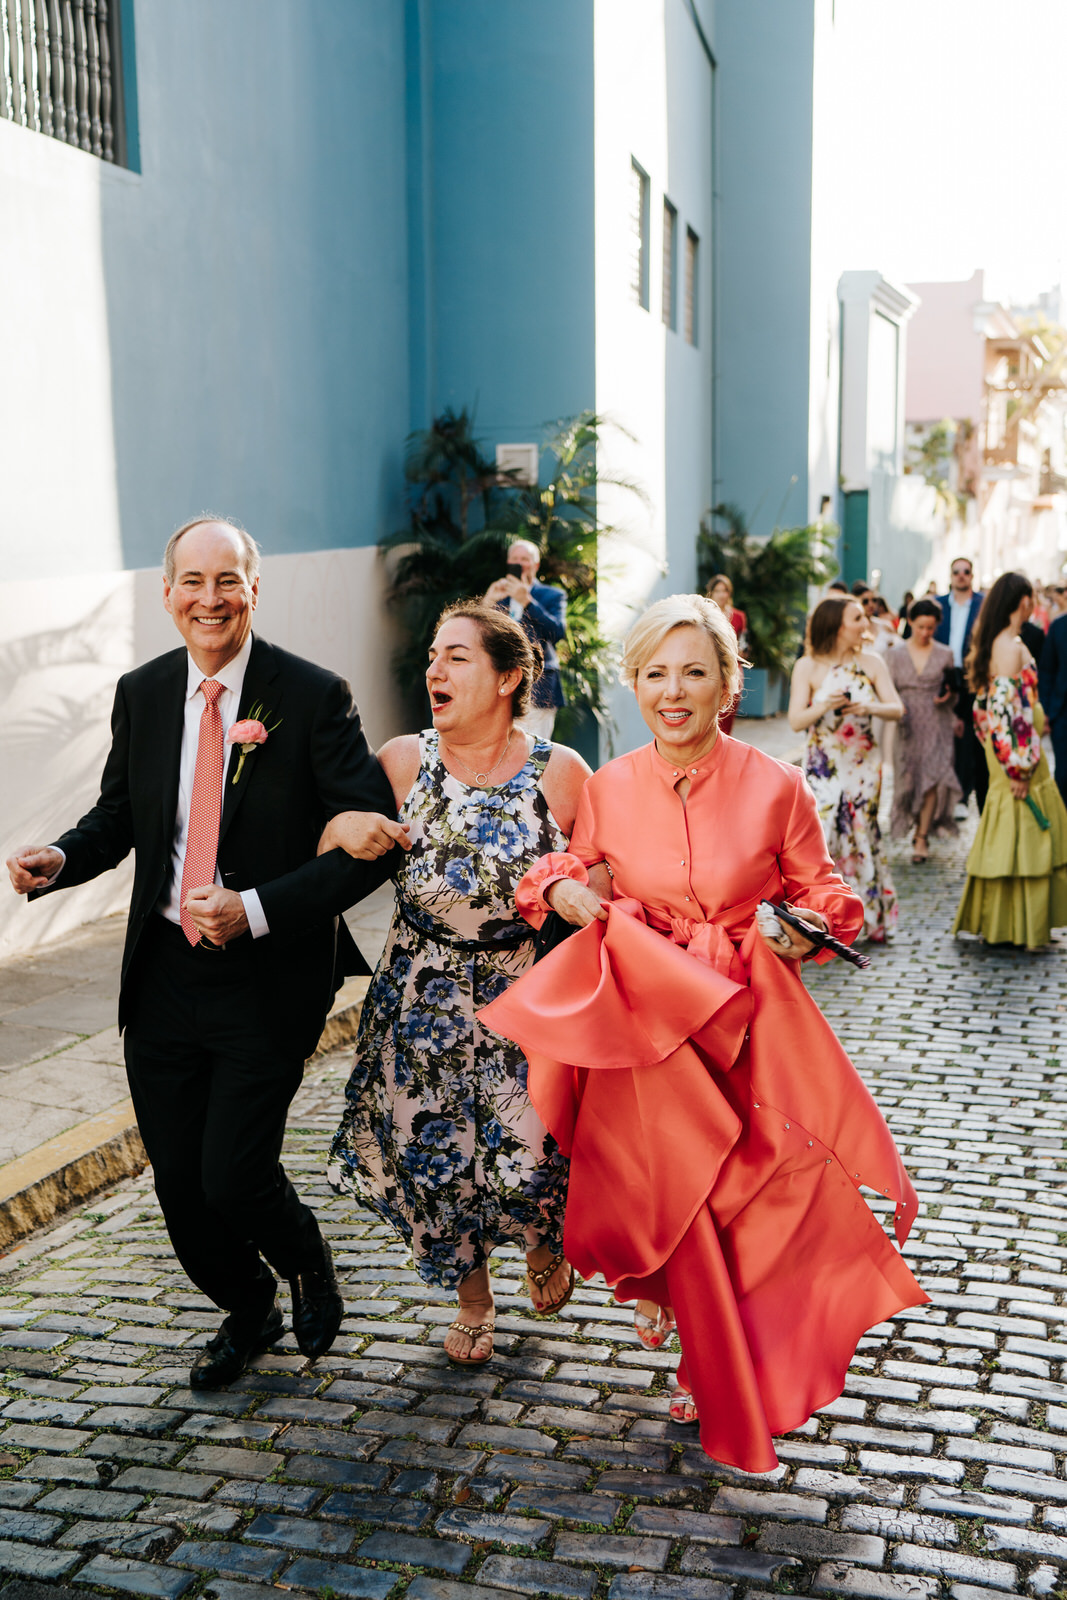 Groom's parents and a friend seen dancing and smiling as they walk towards the El Convento for the wedding reception